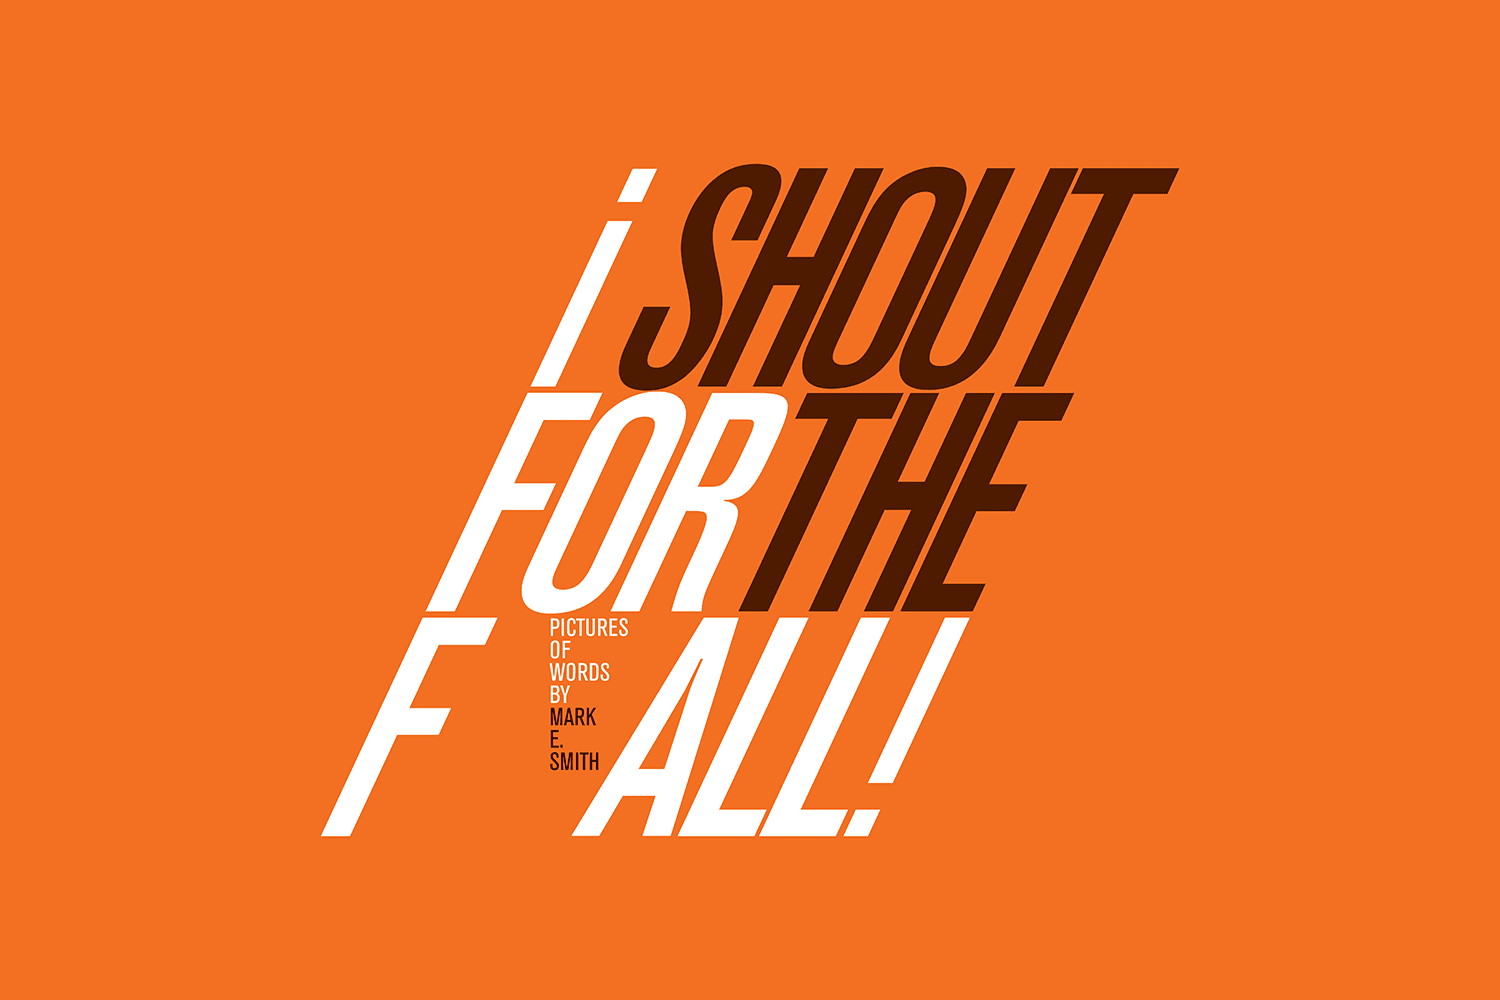 i Shout for The Fall, Pictures of Words by Mark E. Smith